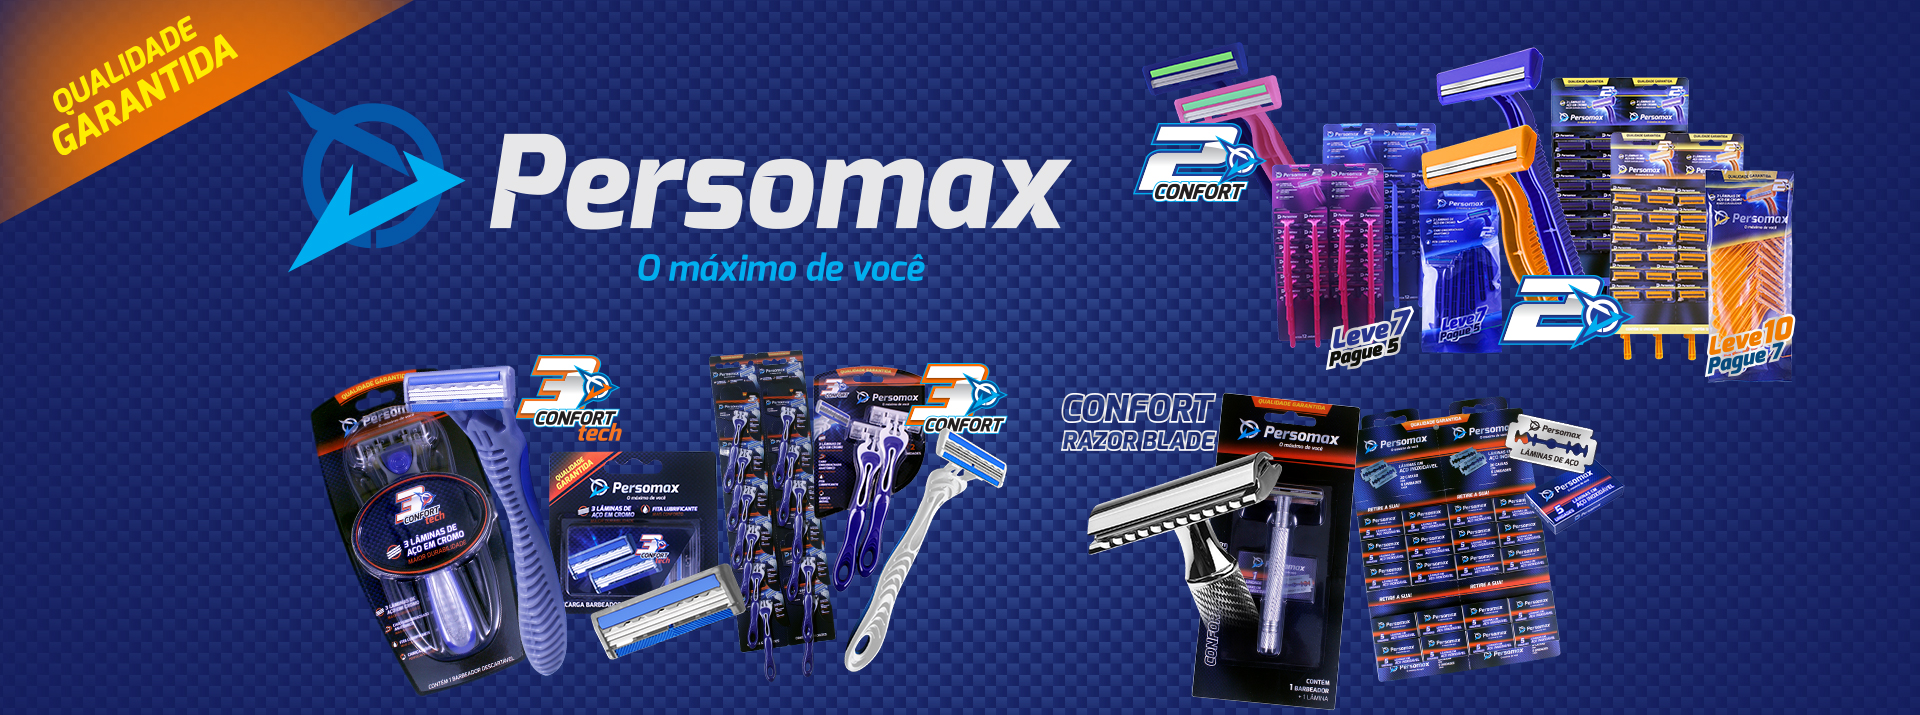 job_22019_Embrast_banner_site_barbeadores_banner_site_1920x715px